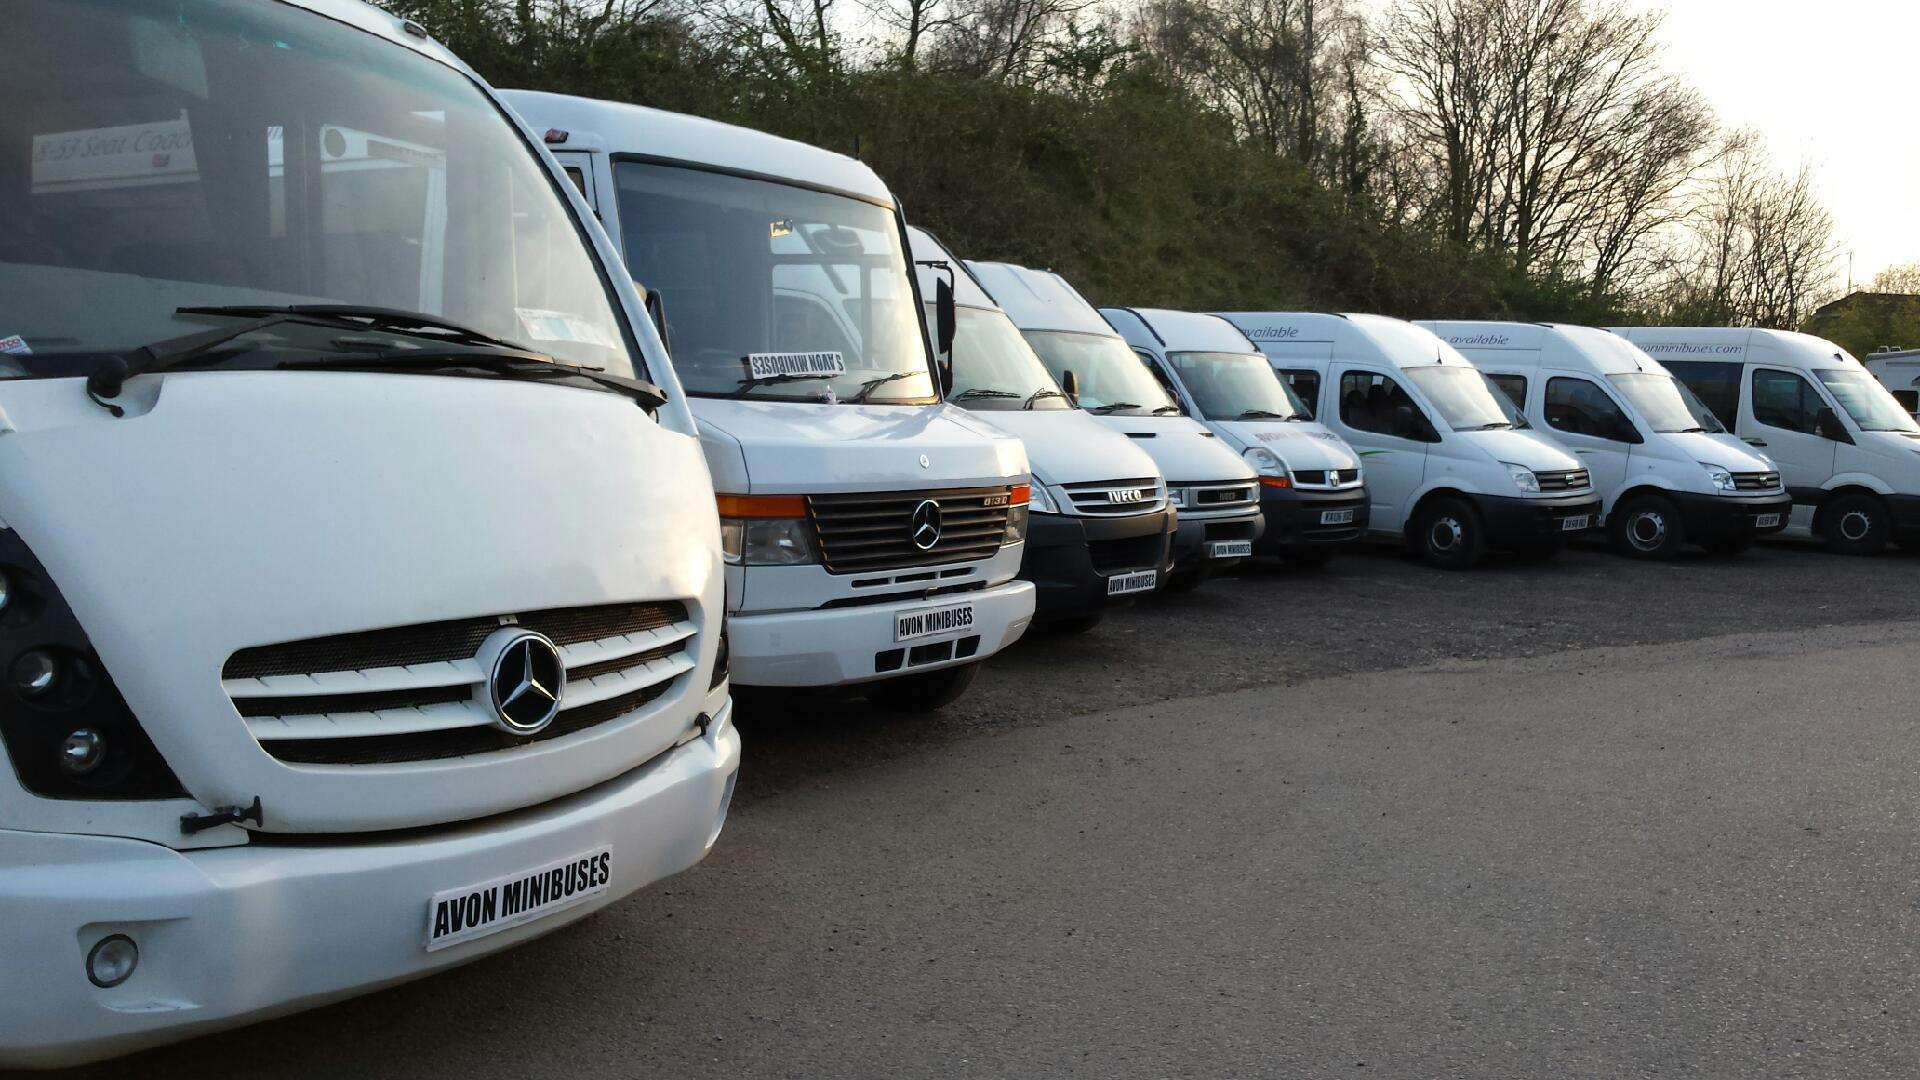 a wide range of minibuses